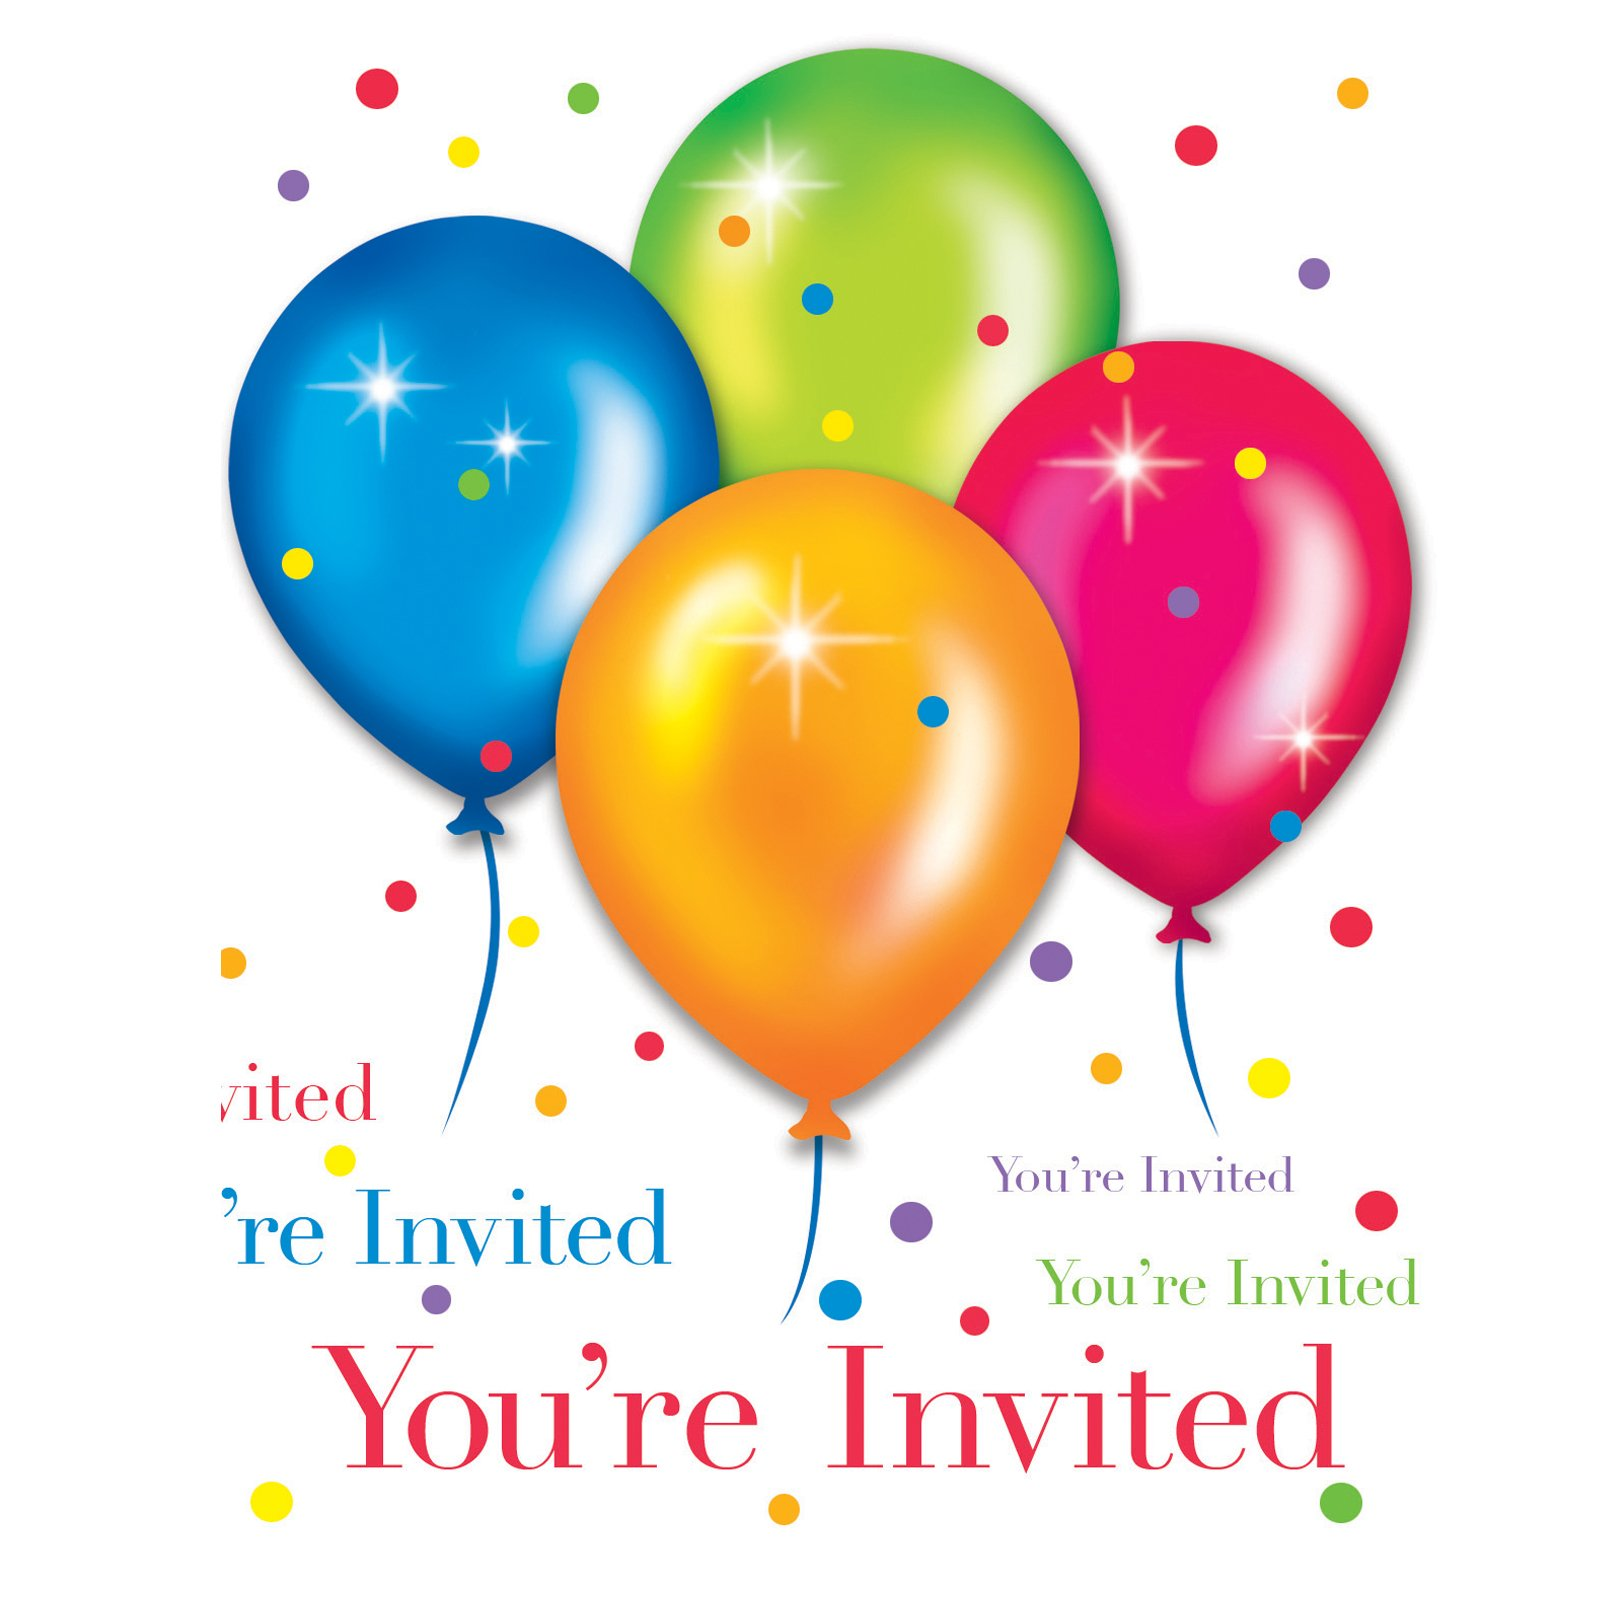 Birthday Balloons Invitations (25 count)